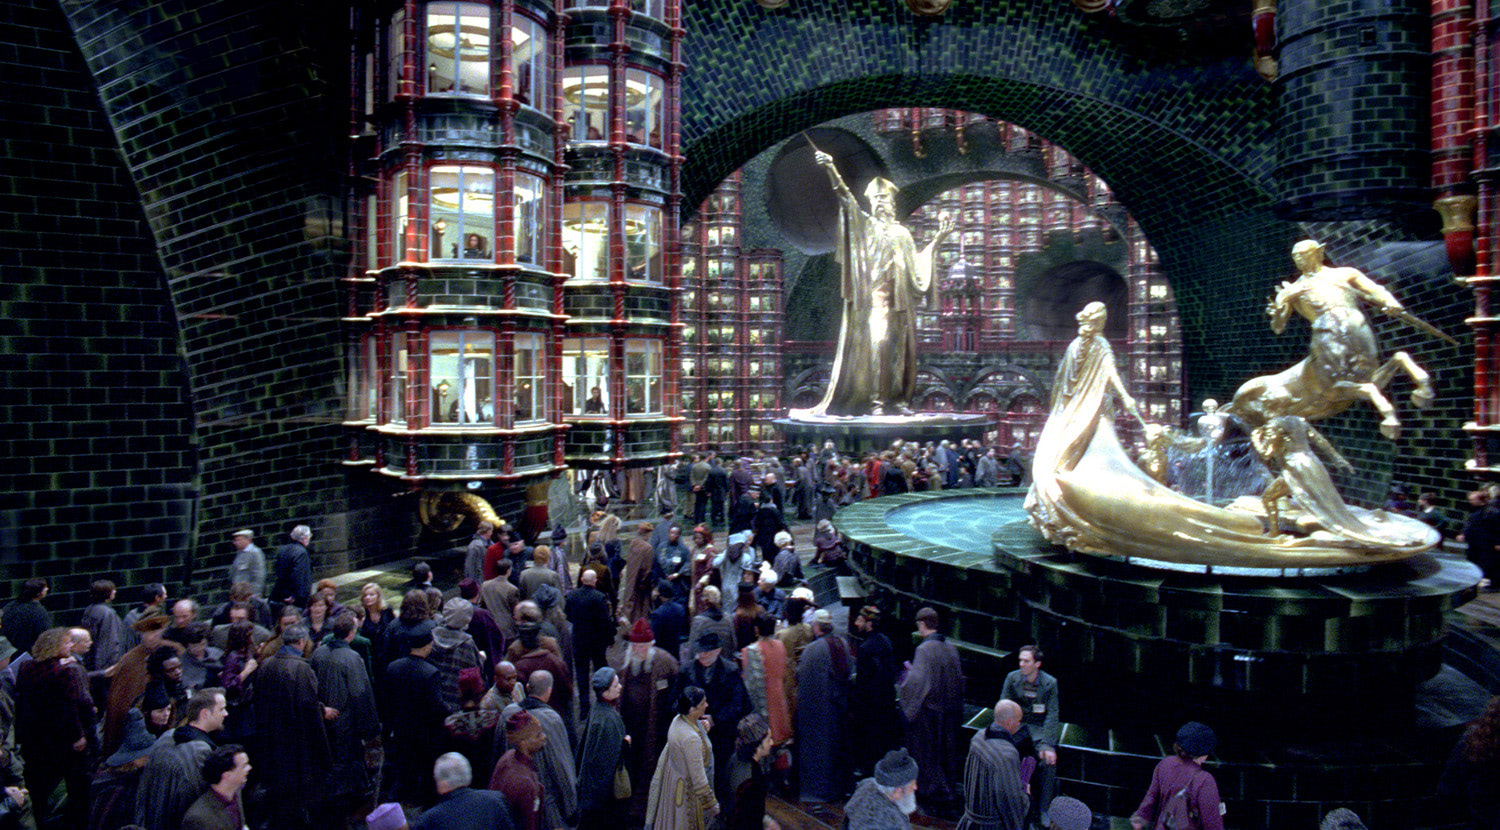 The Ministry of Magic